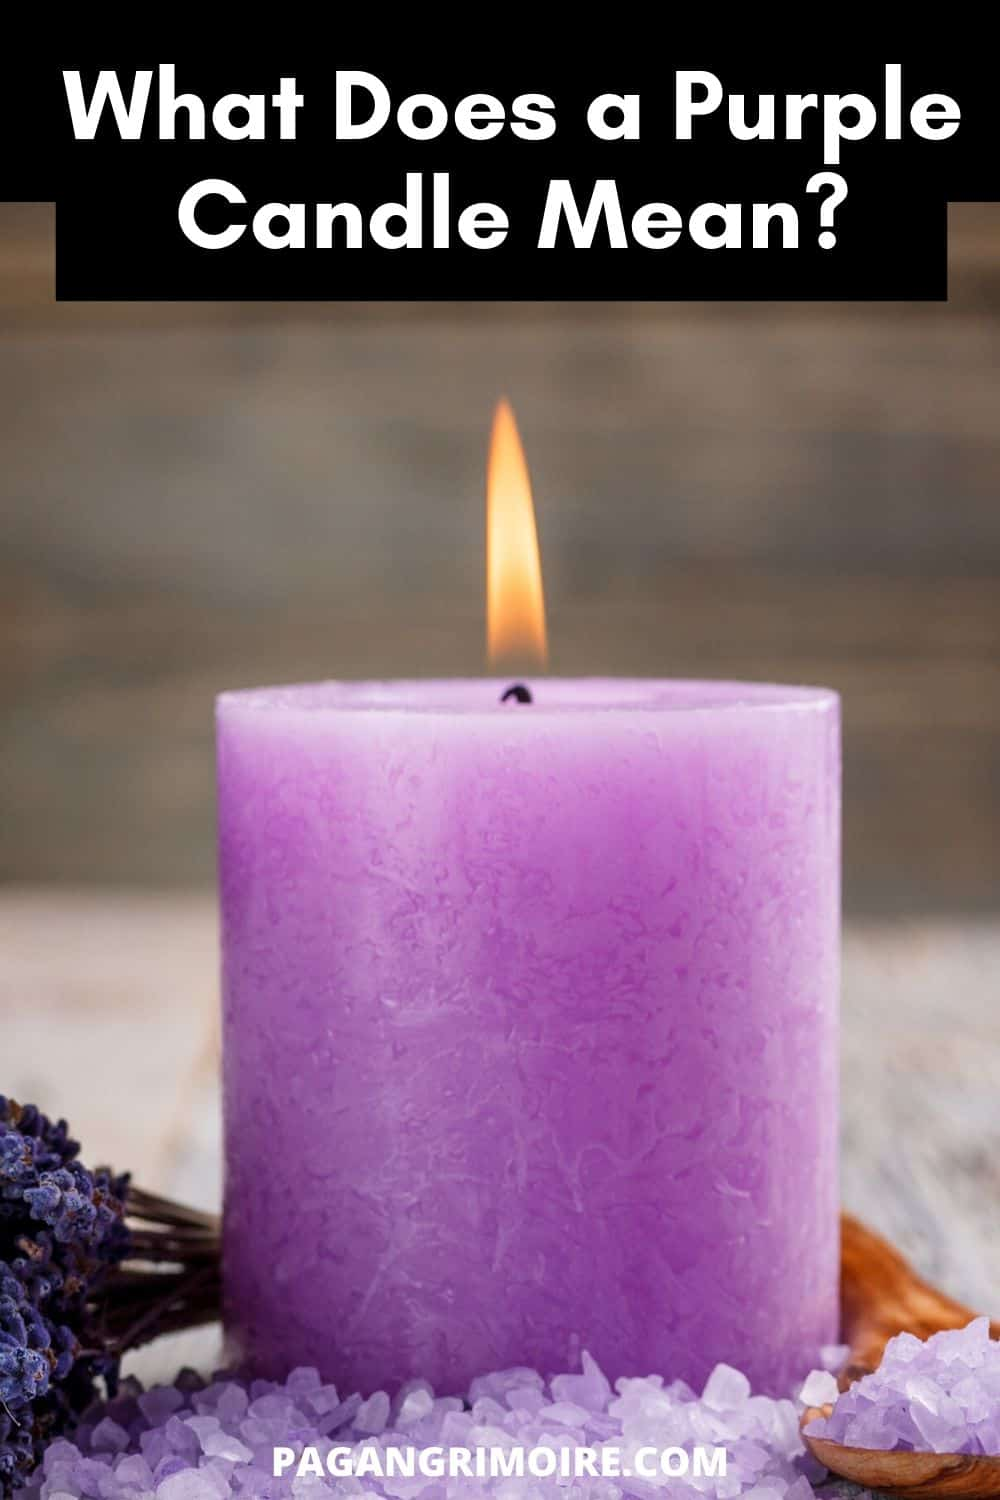 Purple Candle Meaning